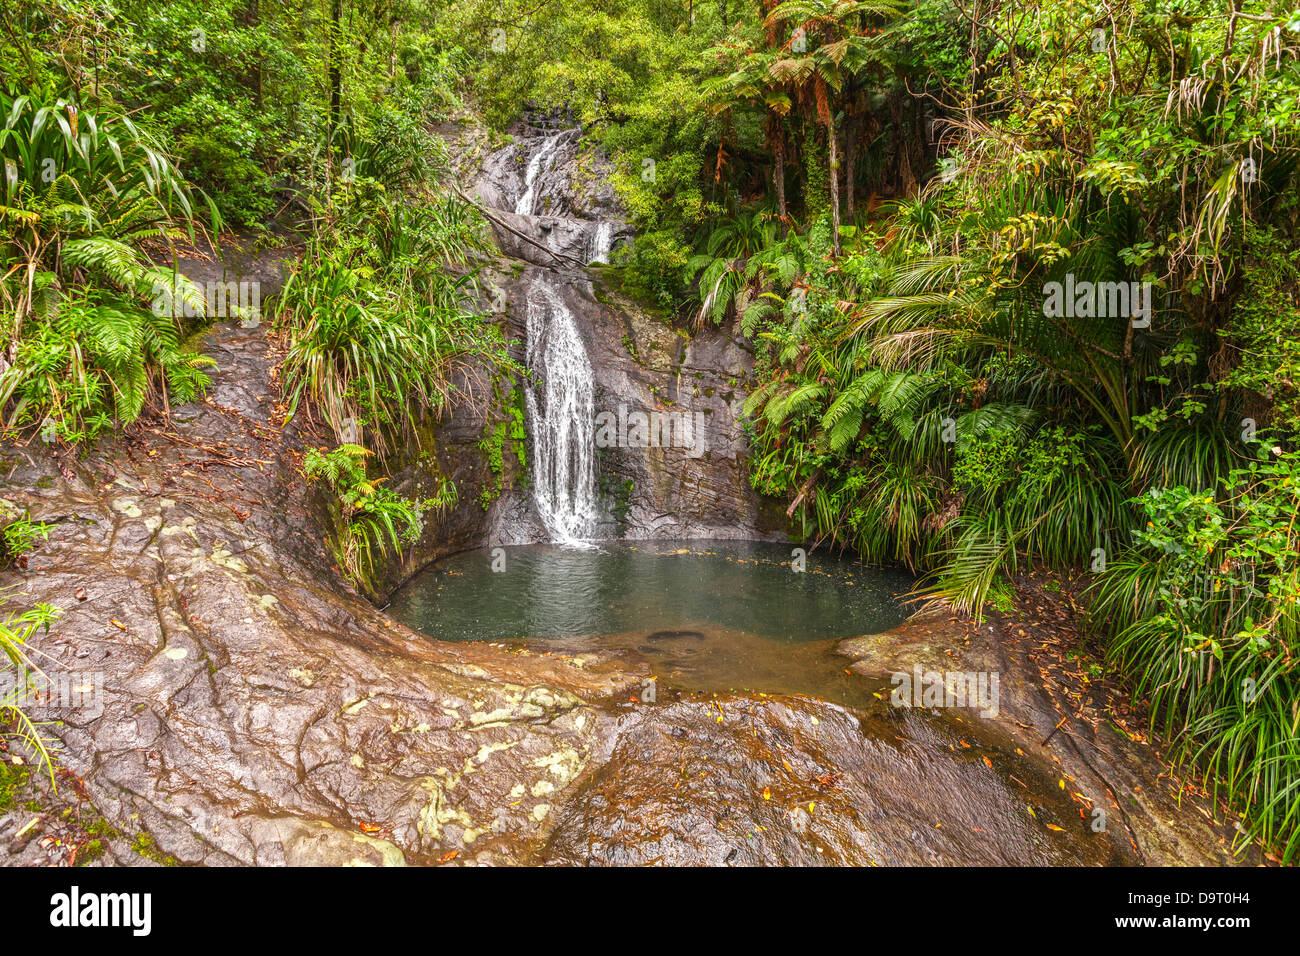 Fairy Falls, in the Waitakere Ranges Regional Park, Auckland Region, New Zealand - Stock Image